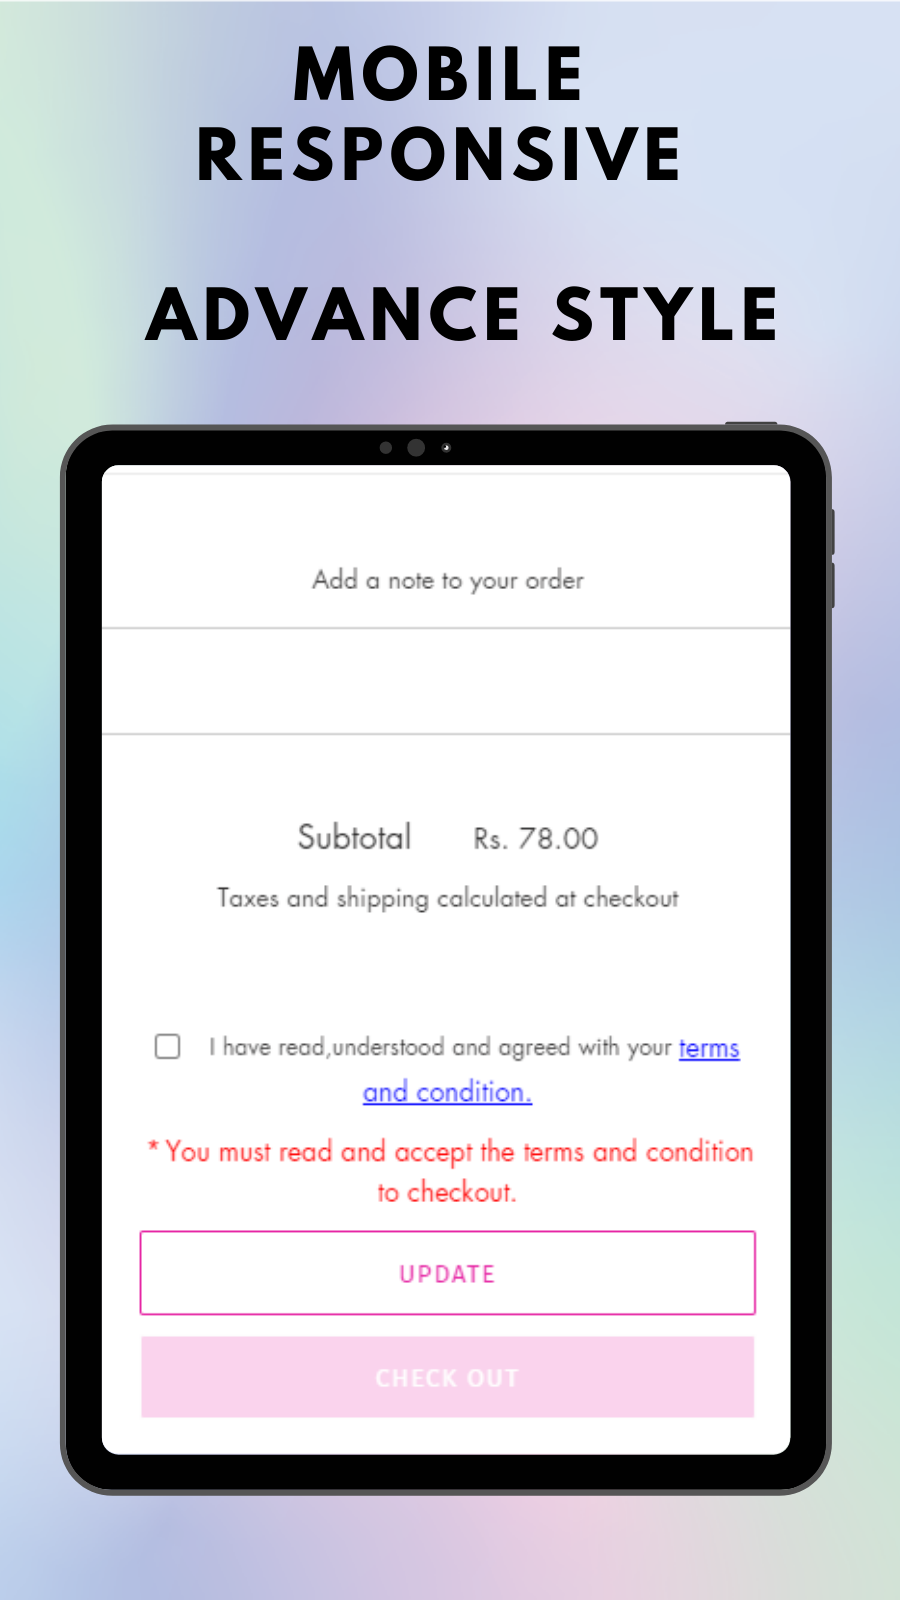 Advance style of I agree to terms checkbox on mobile